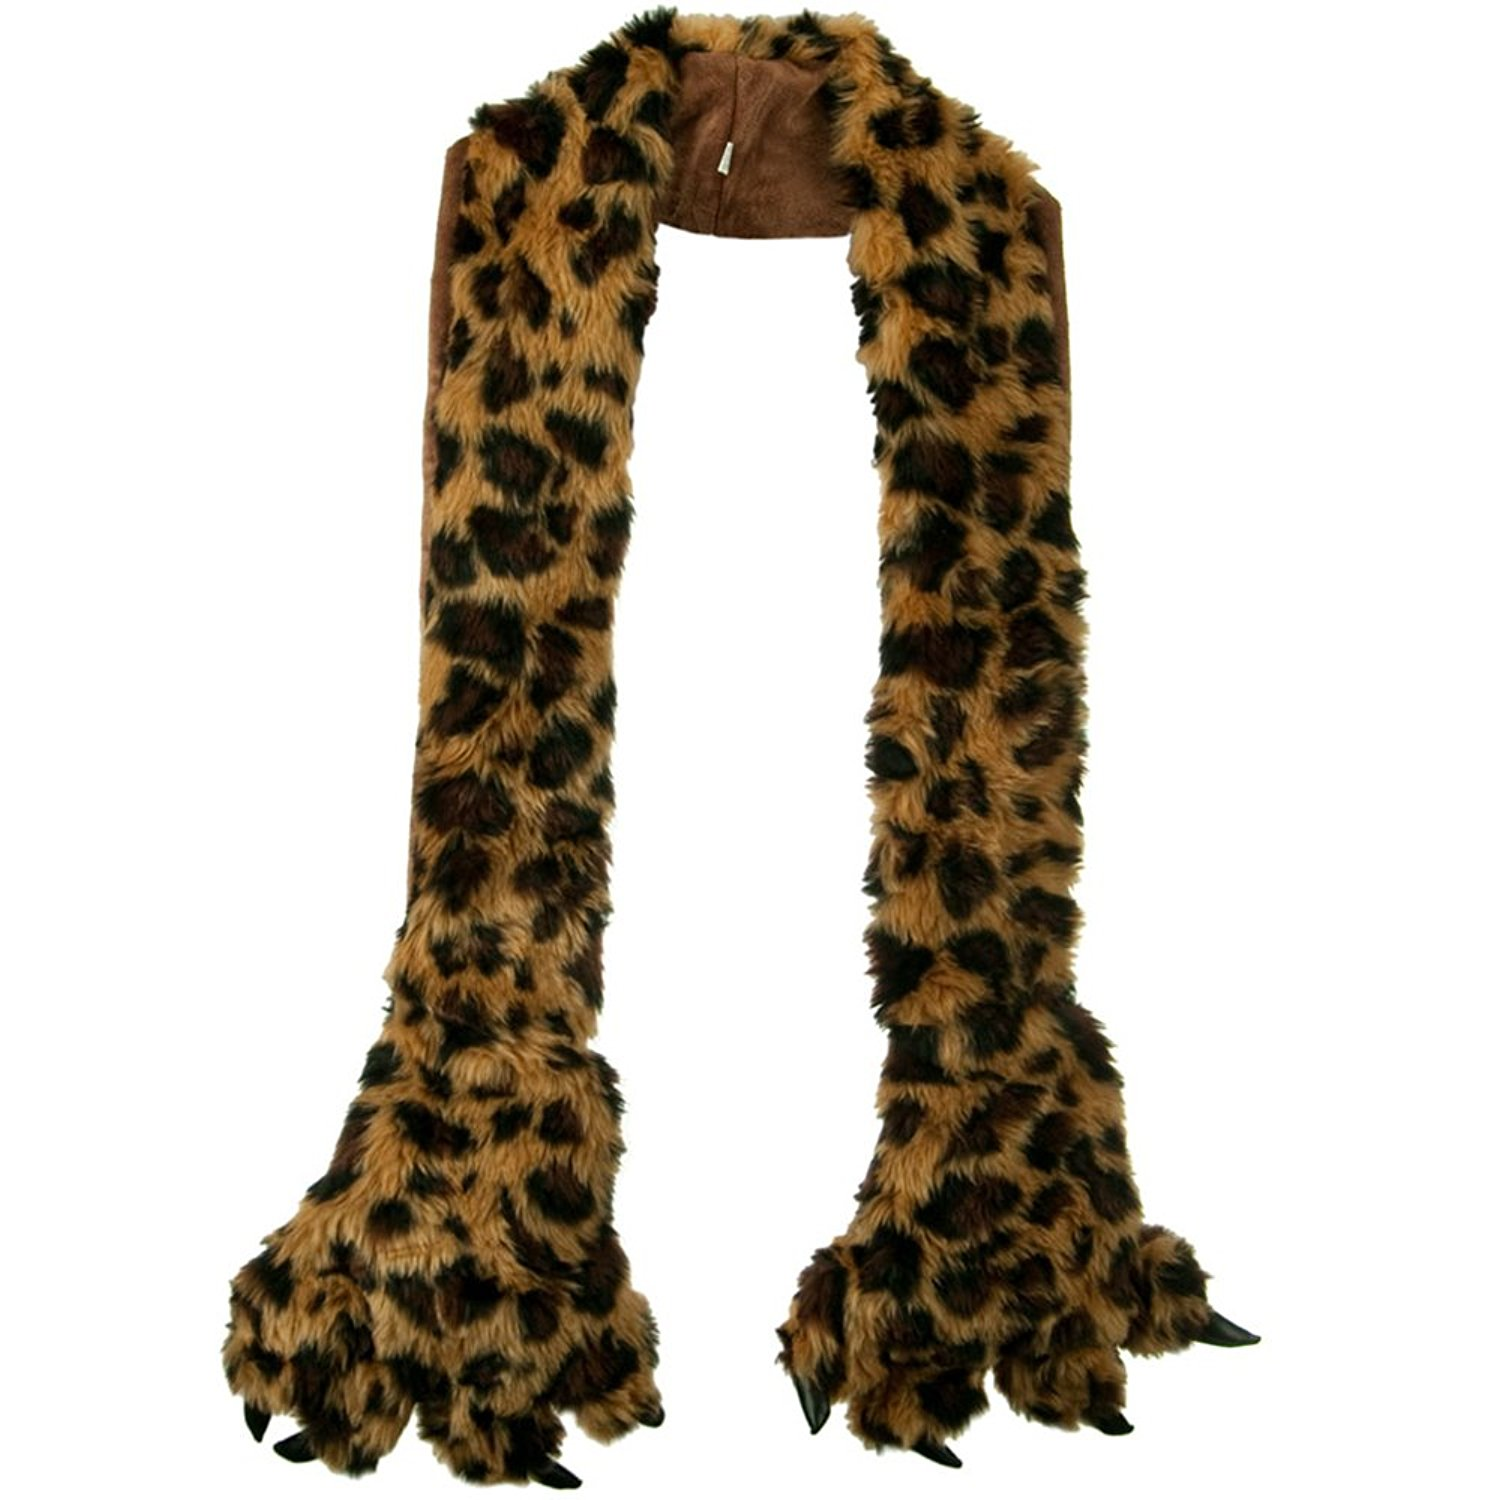 Furry Animal Scarf with Paws - Leopard W30S44E